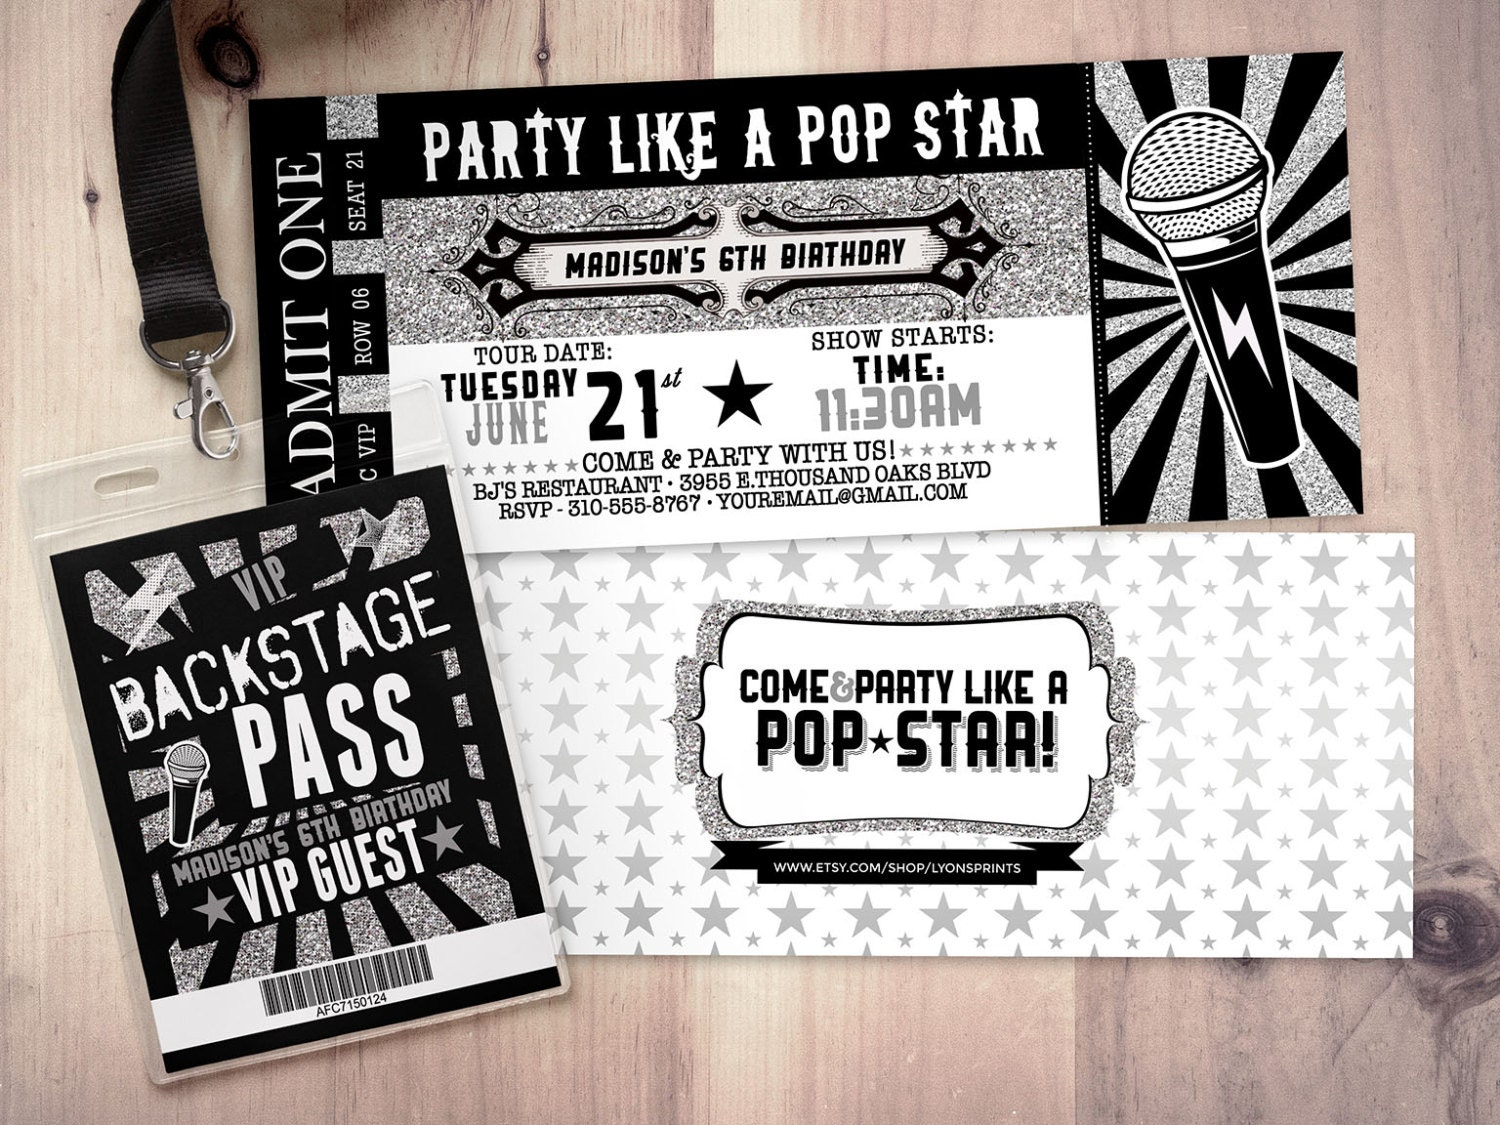 ROCK STAR Concert Ticket Birthday Party Invitation  Music Invitation   Printable, Rockstar Party, Pop Star, Animal Print, 80u0027s, Invite,retro  Concert Ticket Birthday Invitations